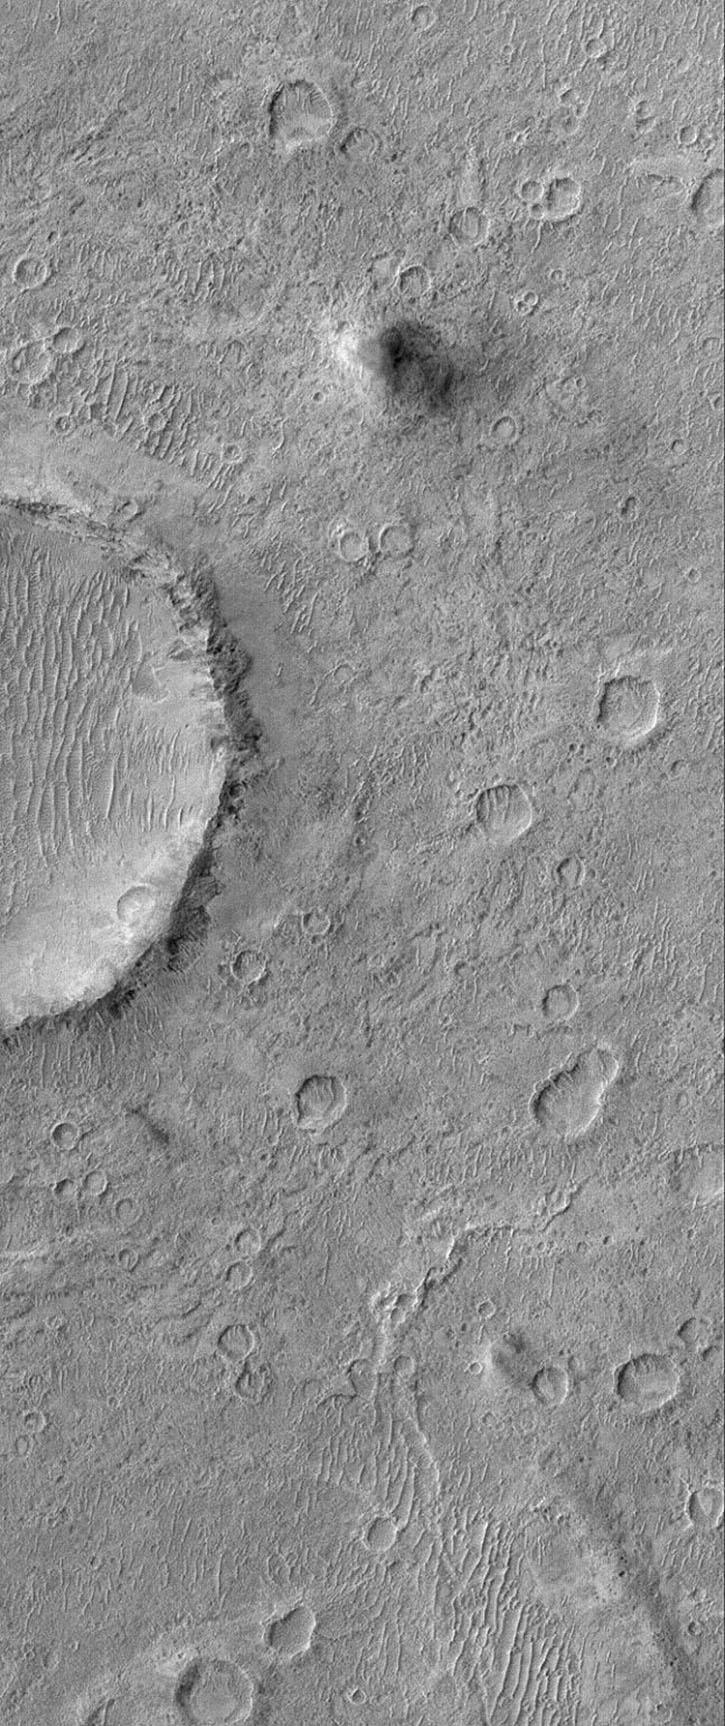 NASA's Mars Global Surveyor shows a cratered plain west of Schiaparelli Crater, Mars. The area captured in this image, and areas adjacent to it, are known for high dust devil traffic.